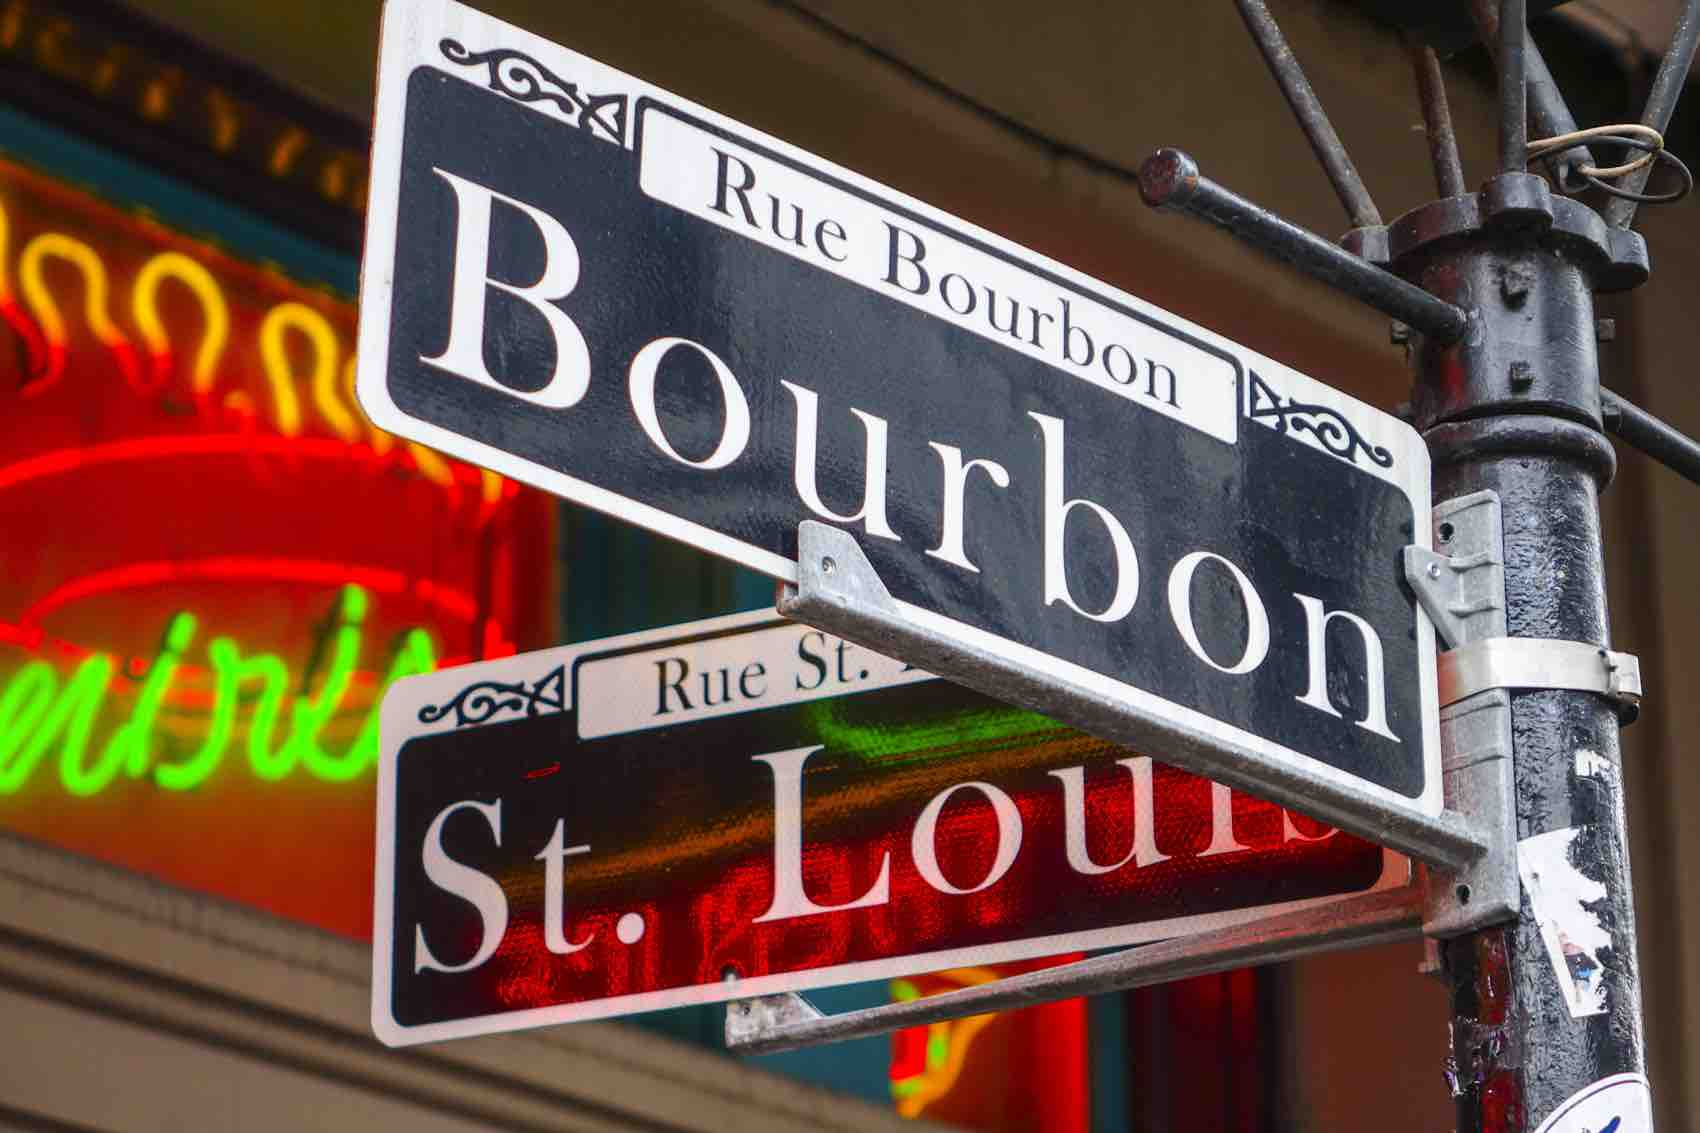 Sign of New Orleans most famous street Bourbon street at French Quarter